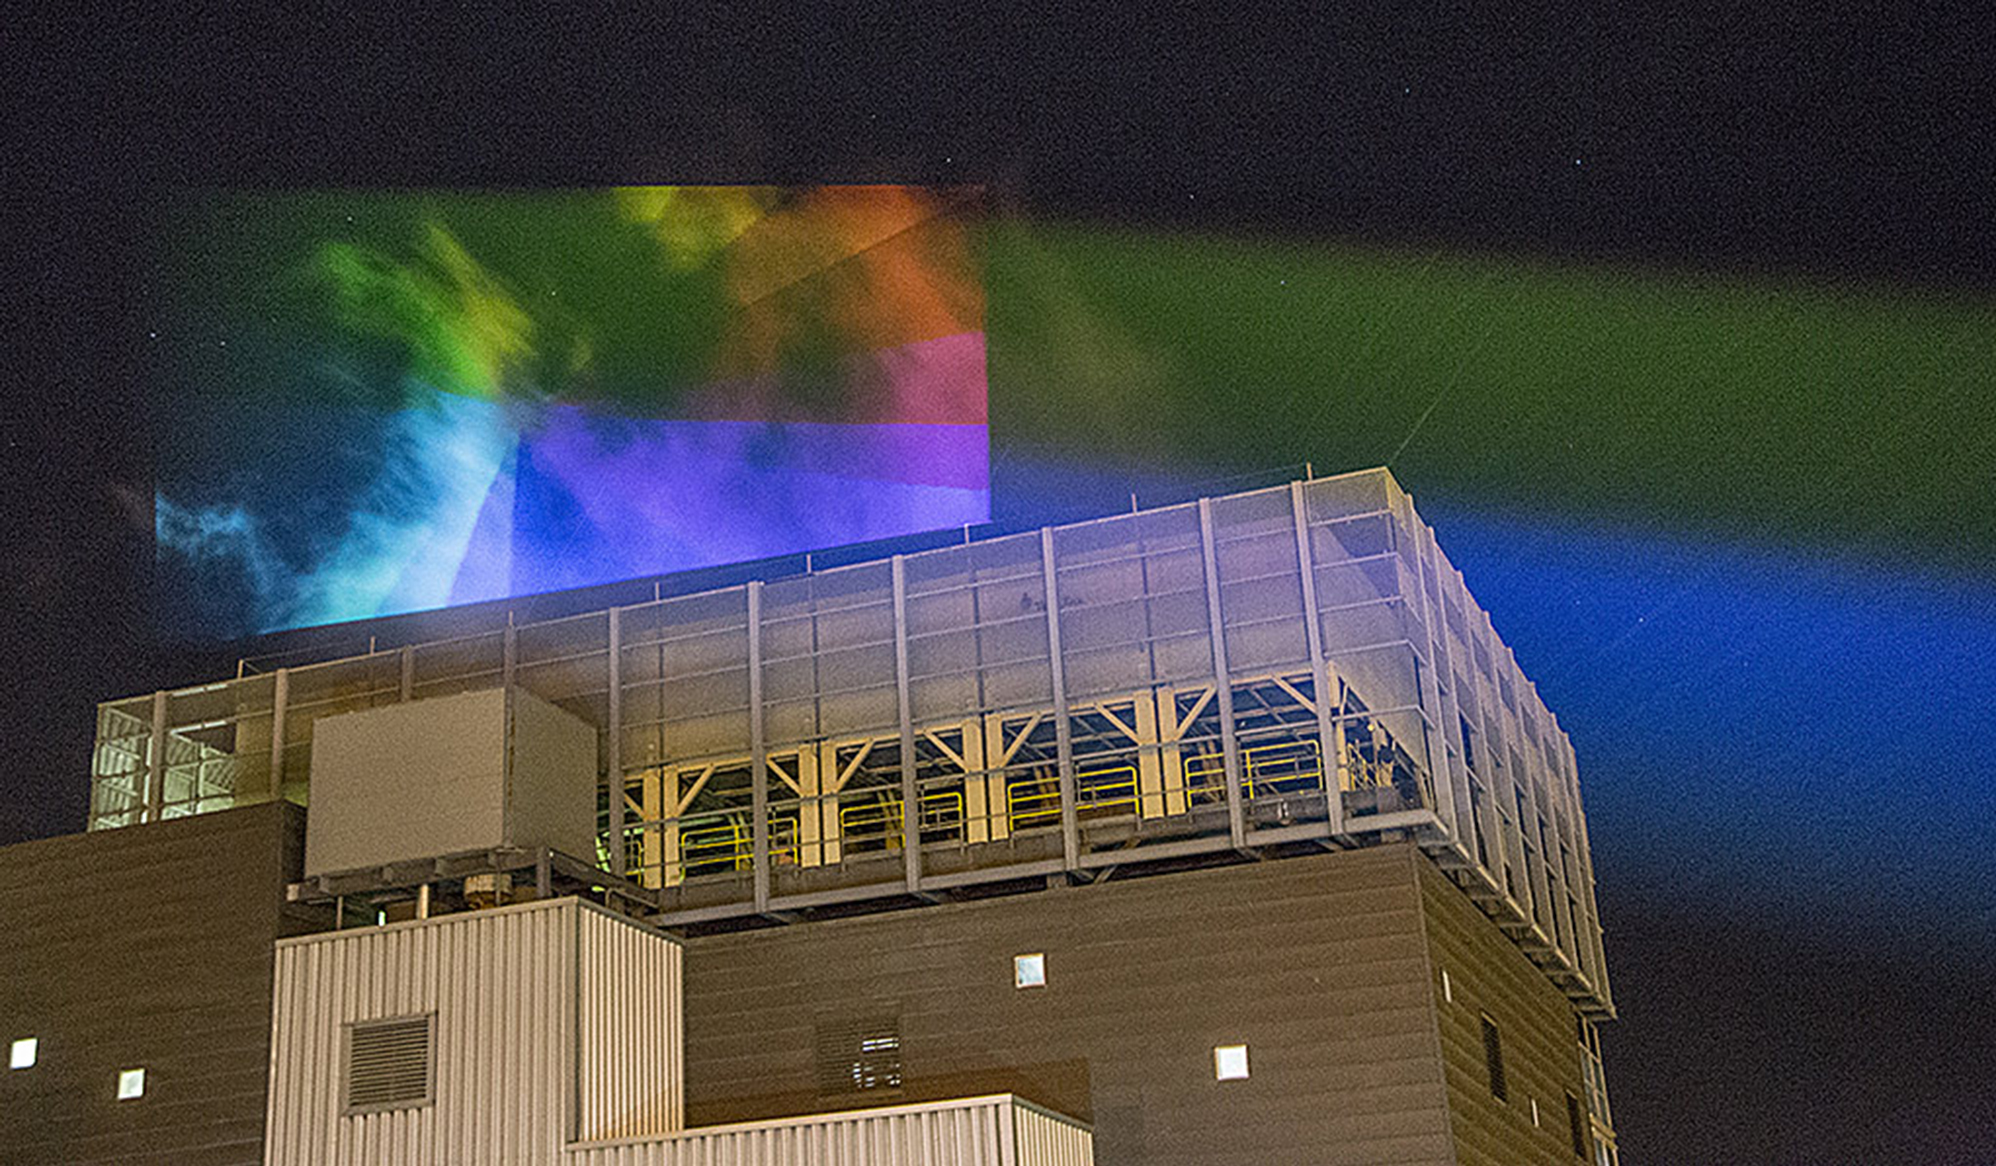 Plume Project lights up the night sky with art